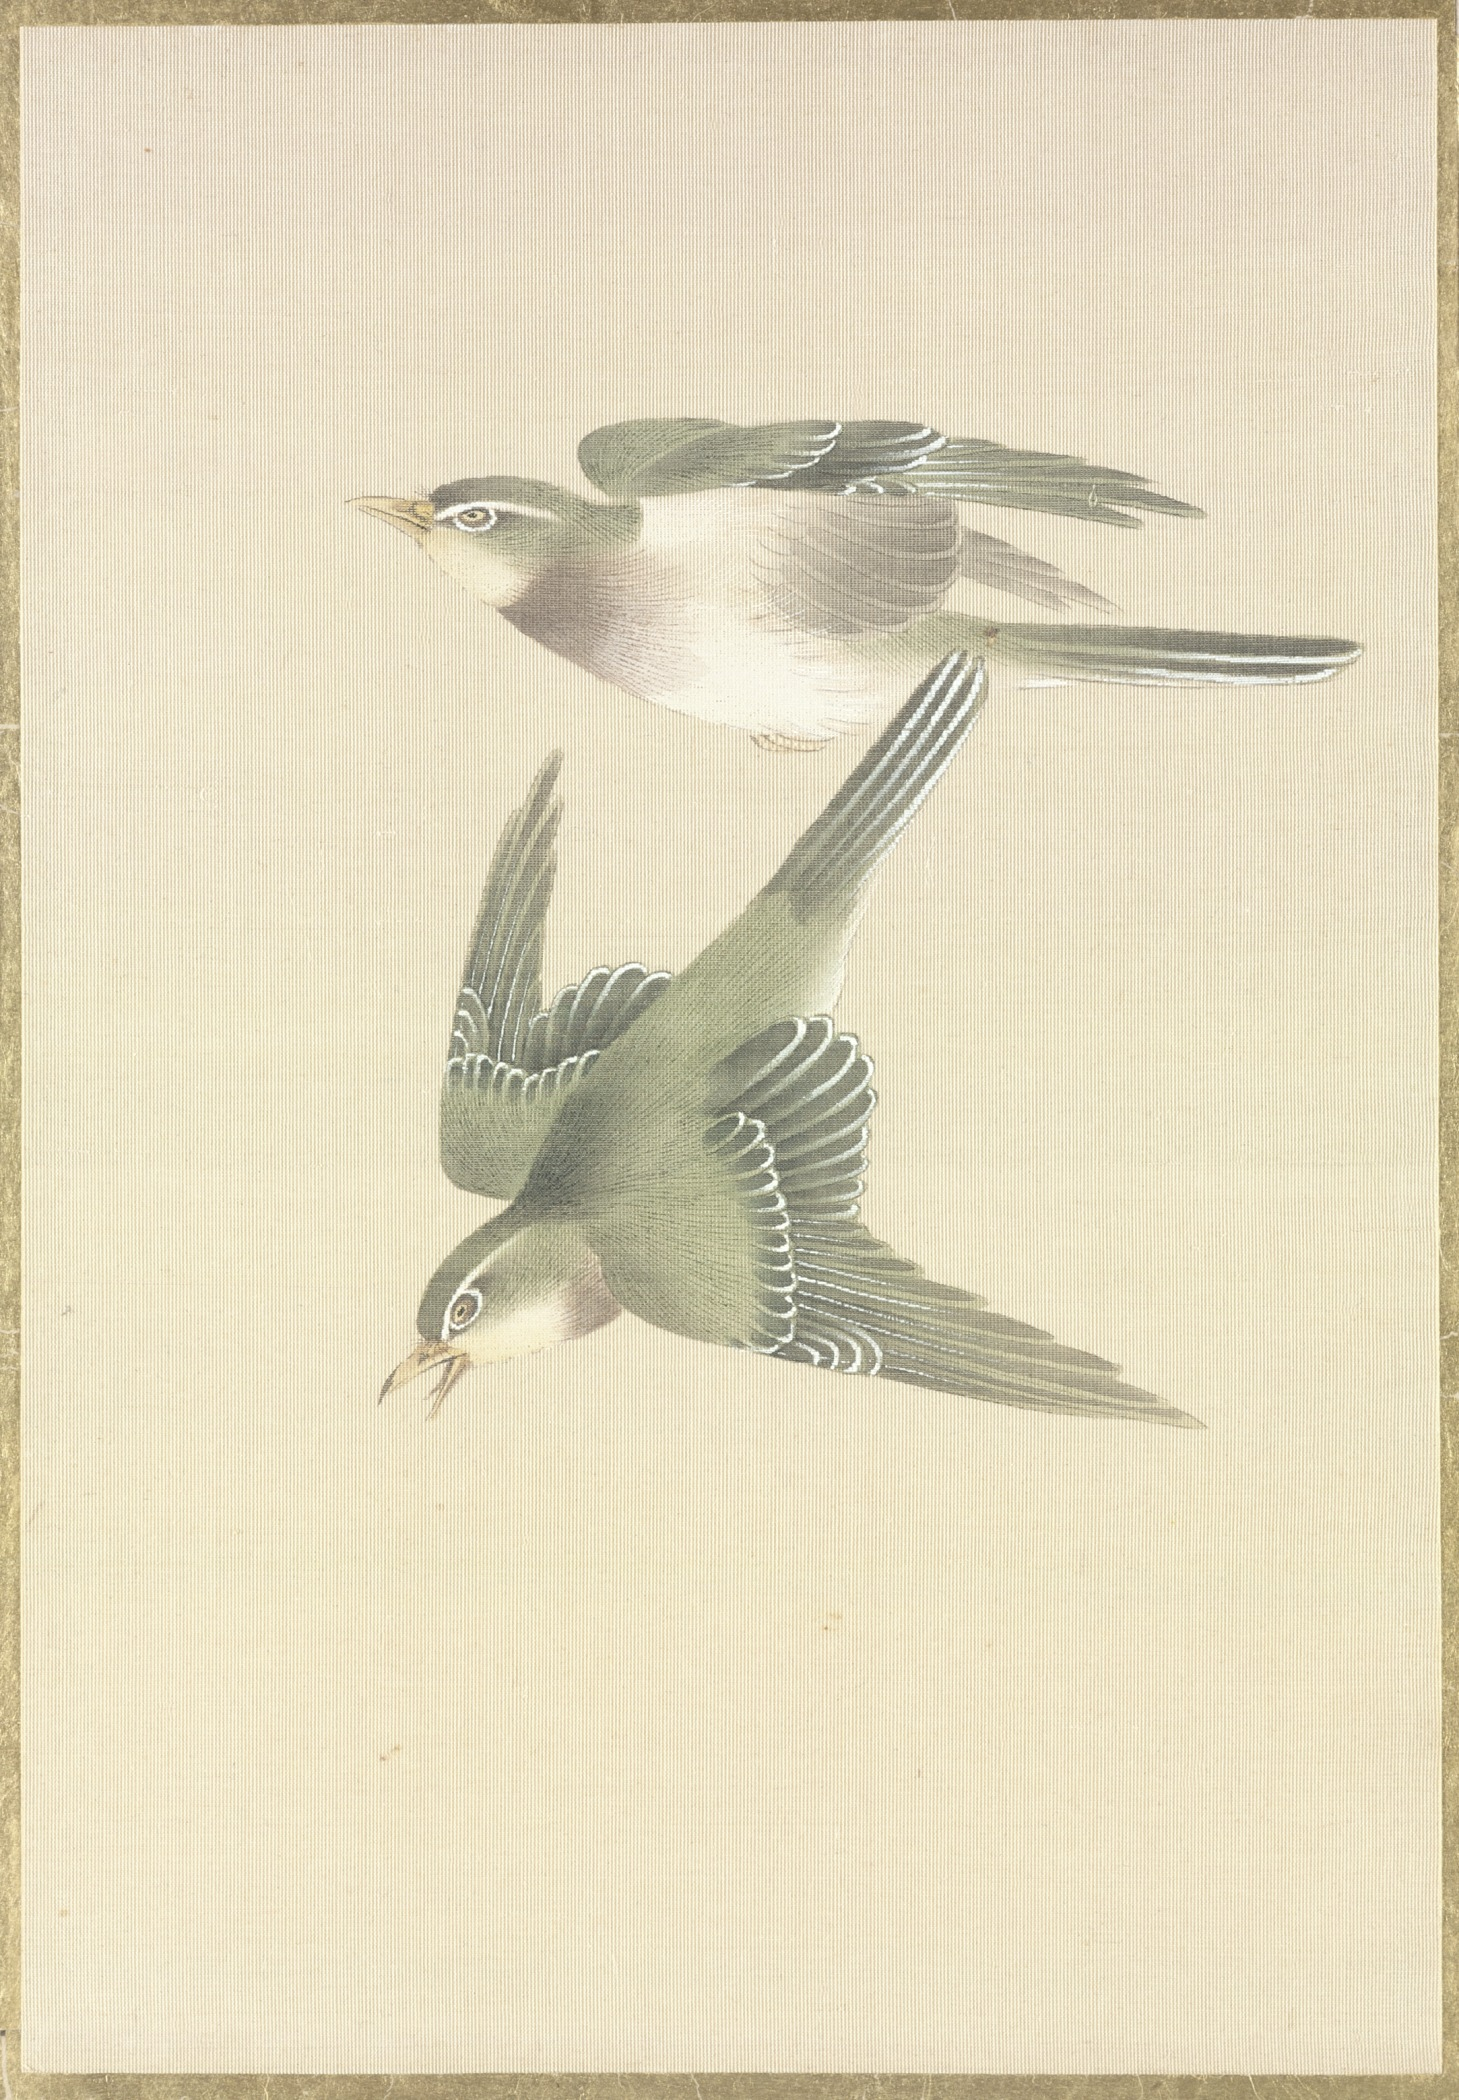 https://upload.wikimedia.org/wikipedia/commons/d/d5/Pictures_of_Flowers_and_Birds_LACMA_M.85.99_%2818_of_25%29.jpg